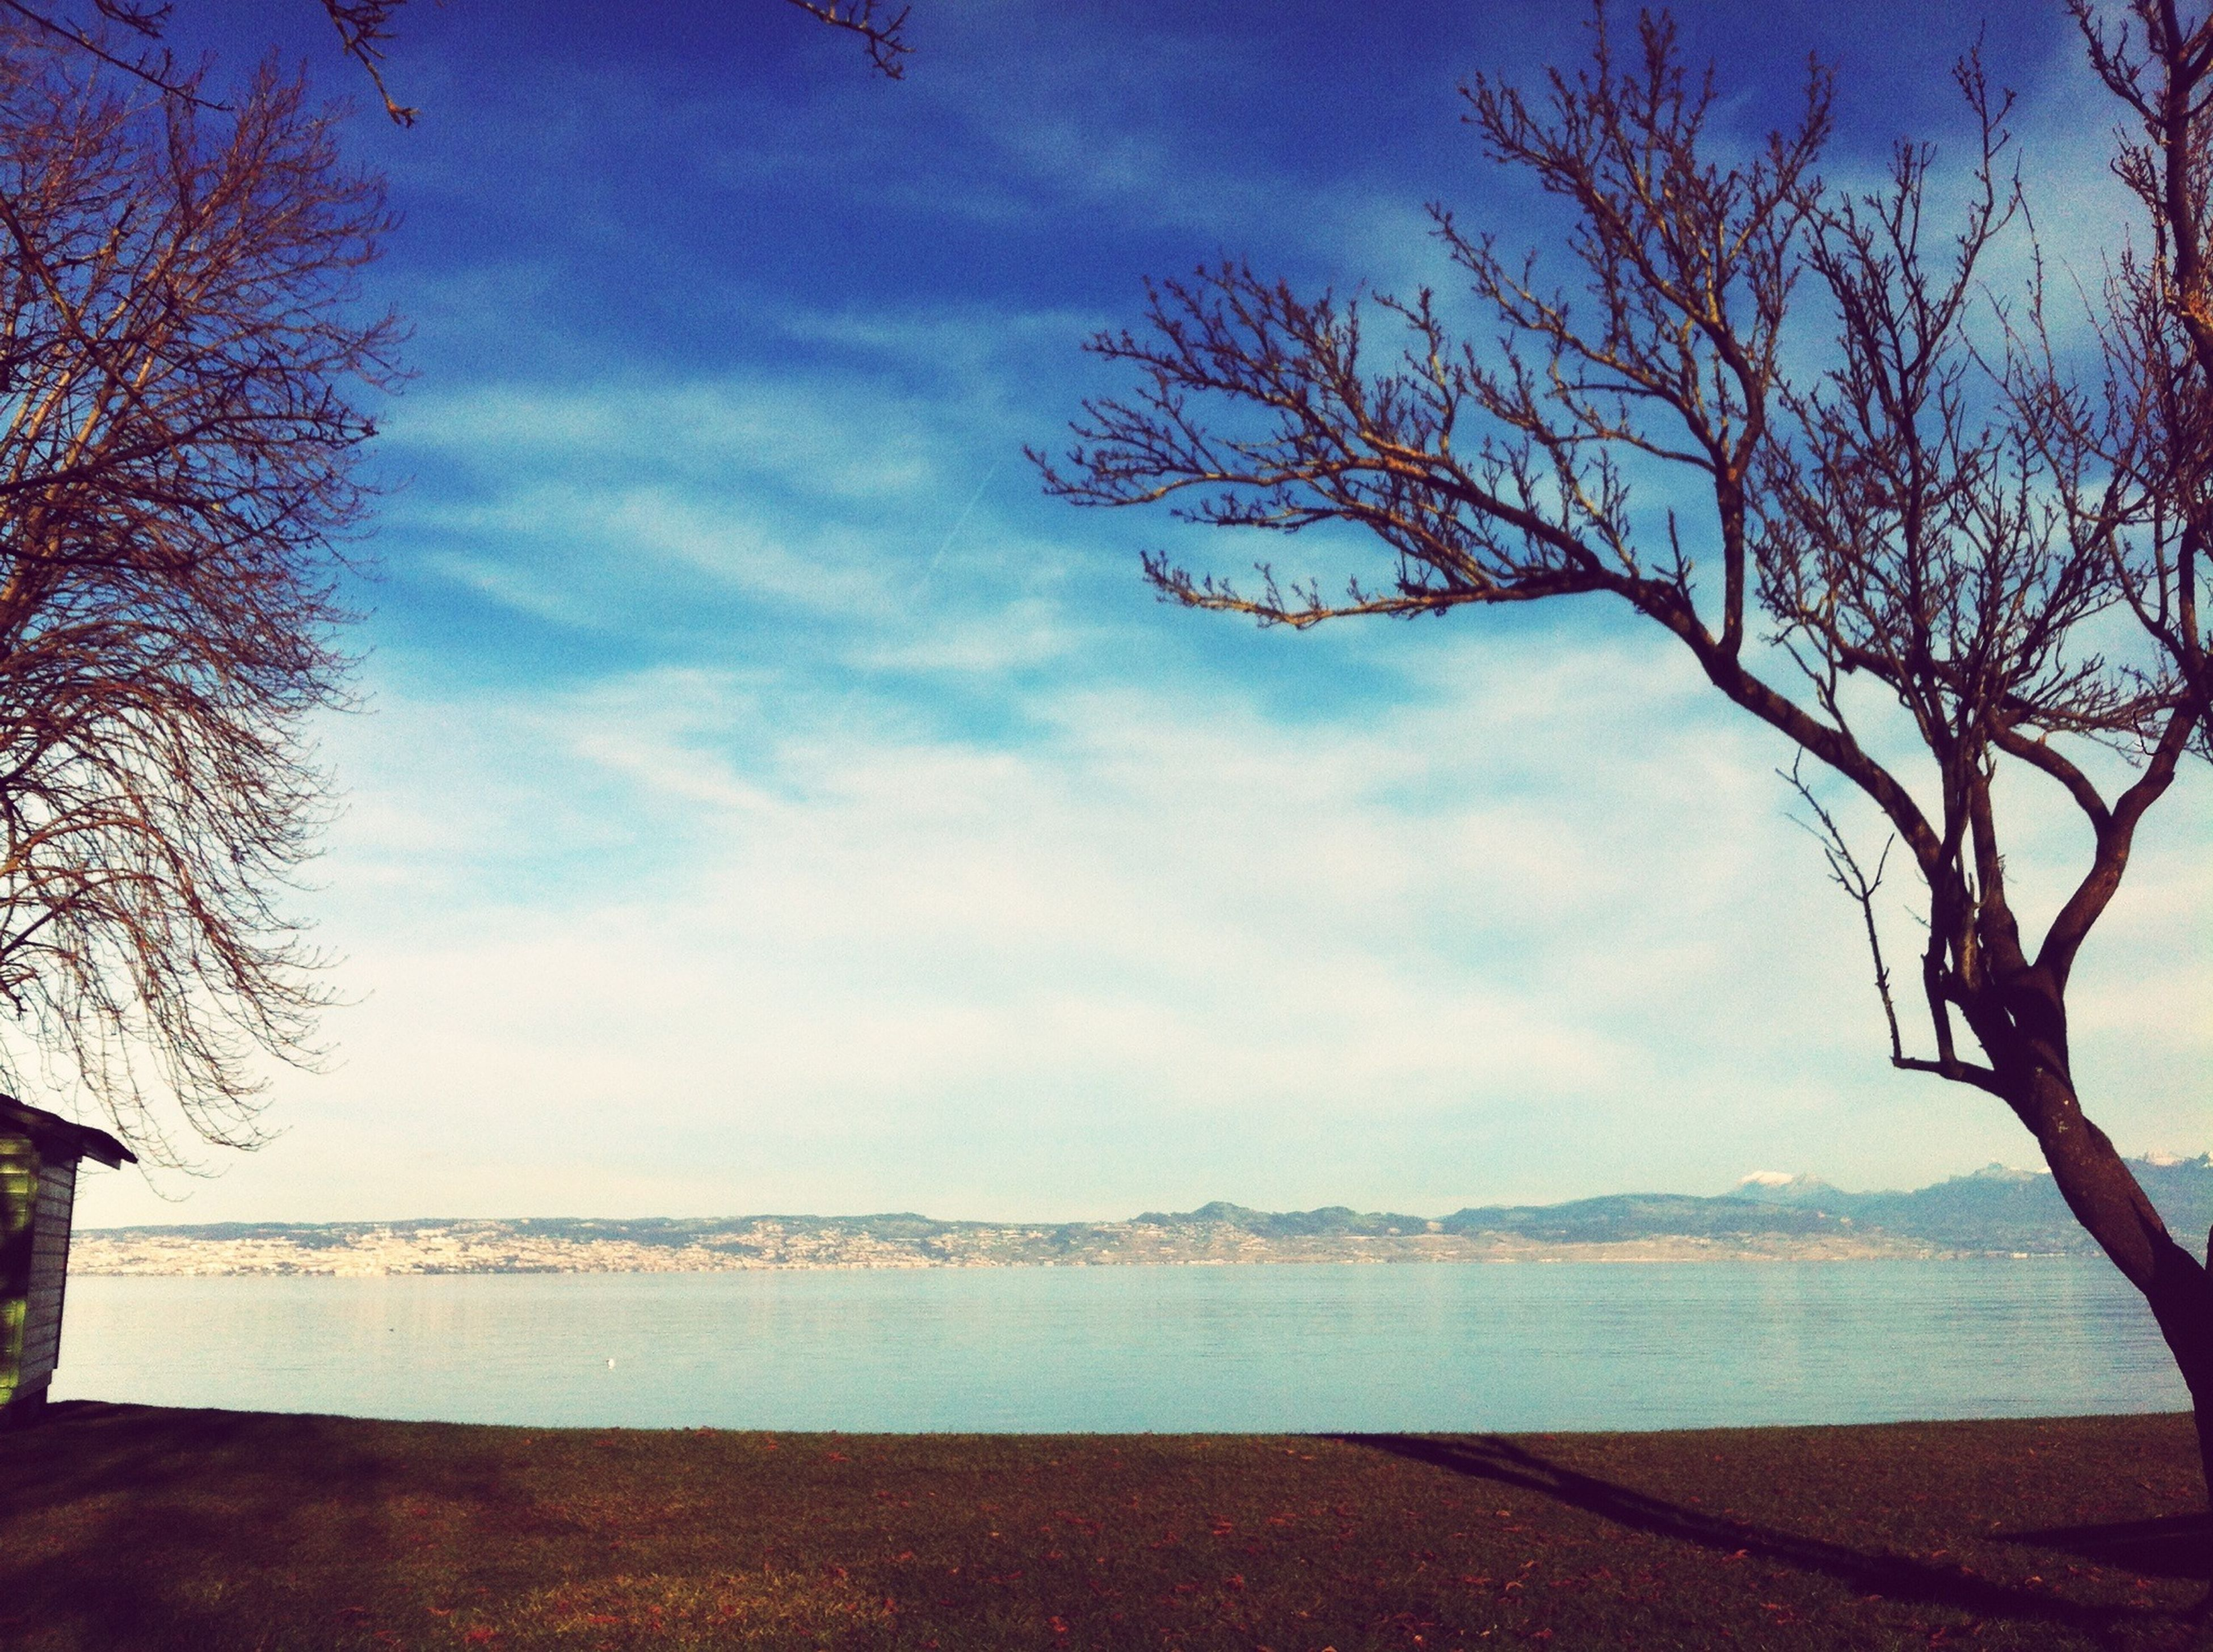 sky, water, tree, tranquil scene, tranquility, scenics, bare tree, beauty in nature, sea, branch, nature, cloud - sky, cloud, beach, horizon over water, shore, blue, idyllic, lake, tree trunk